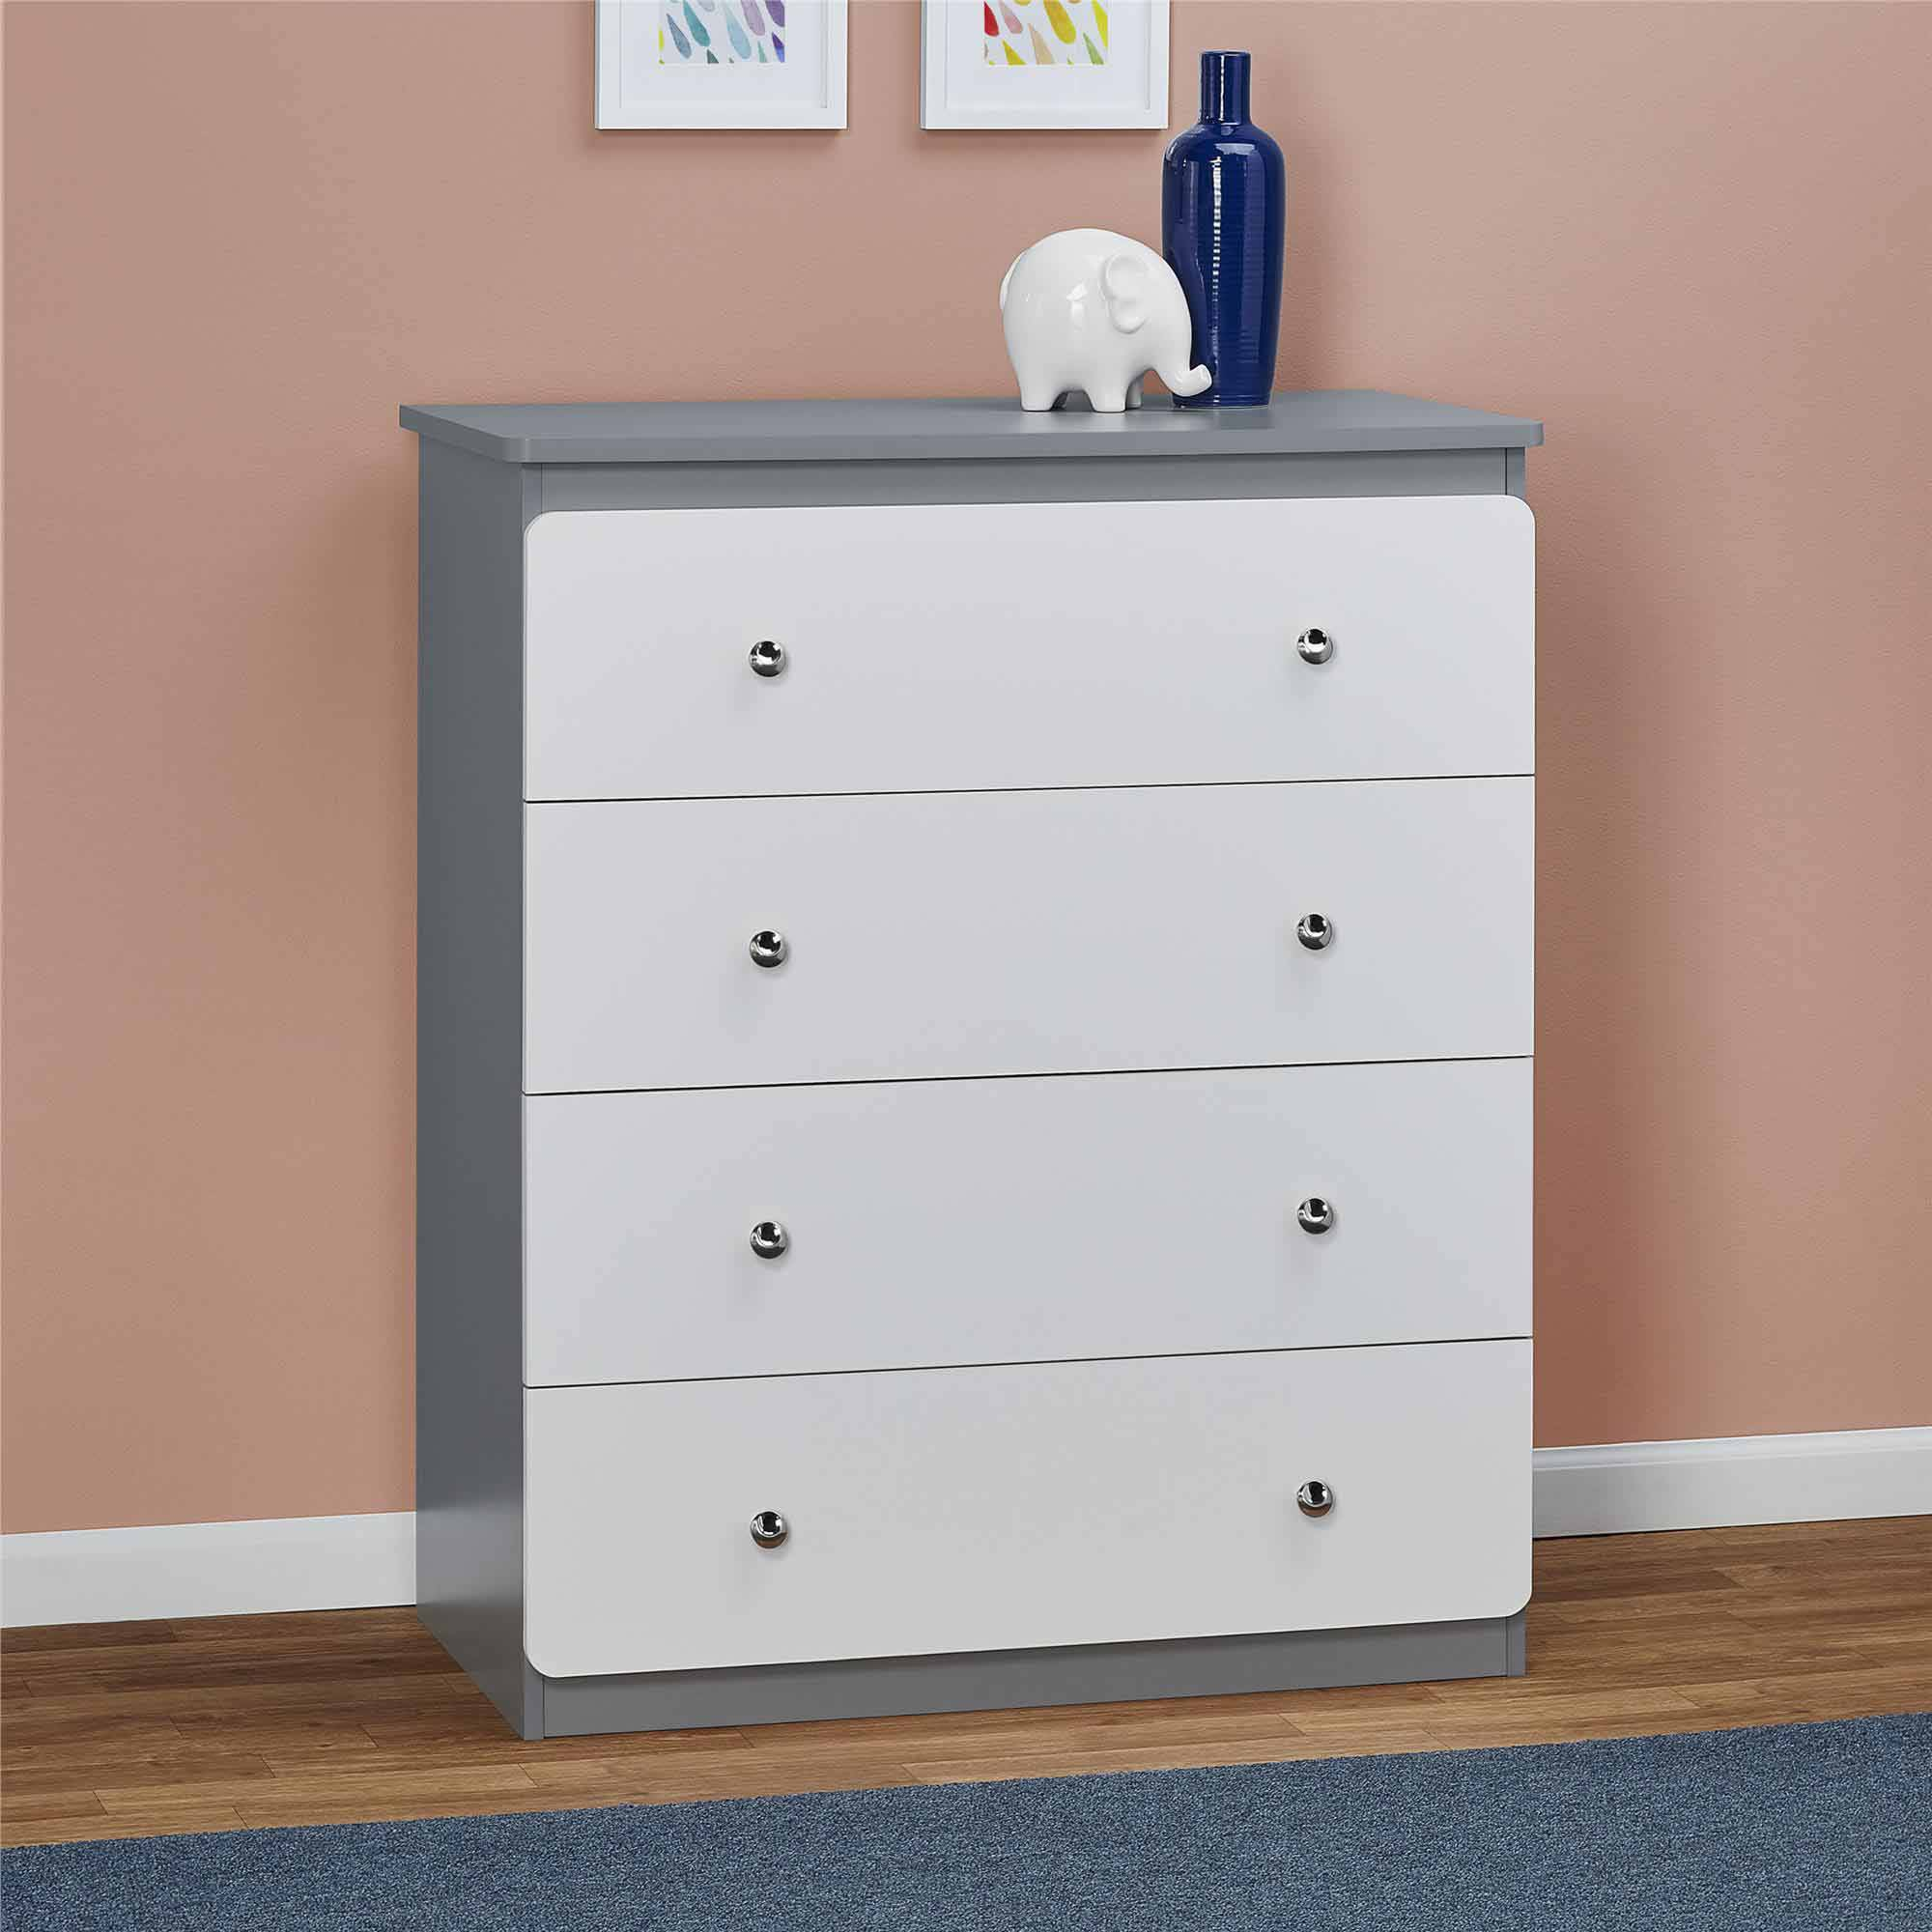 cosco willow lake 4 drawer dresser coffee house plank and white ebay. Black Bedroom Furniture Sets. Home Design Ideas